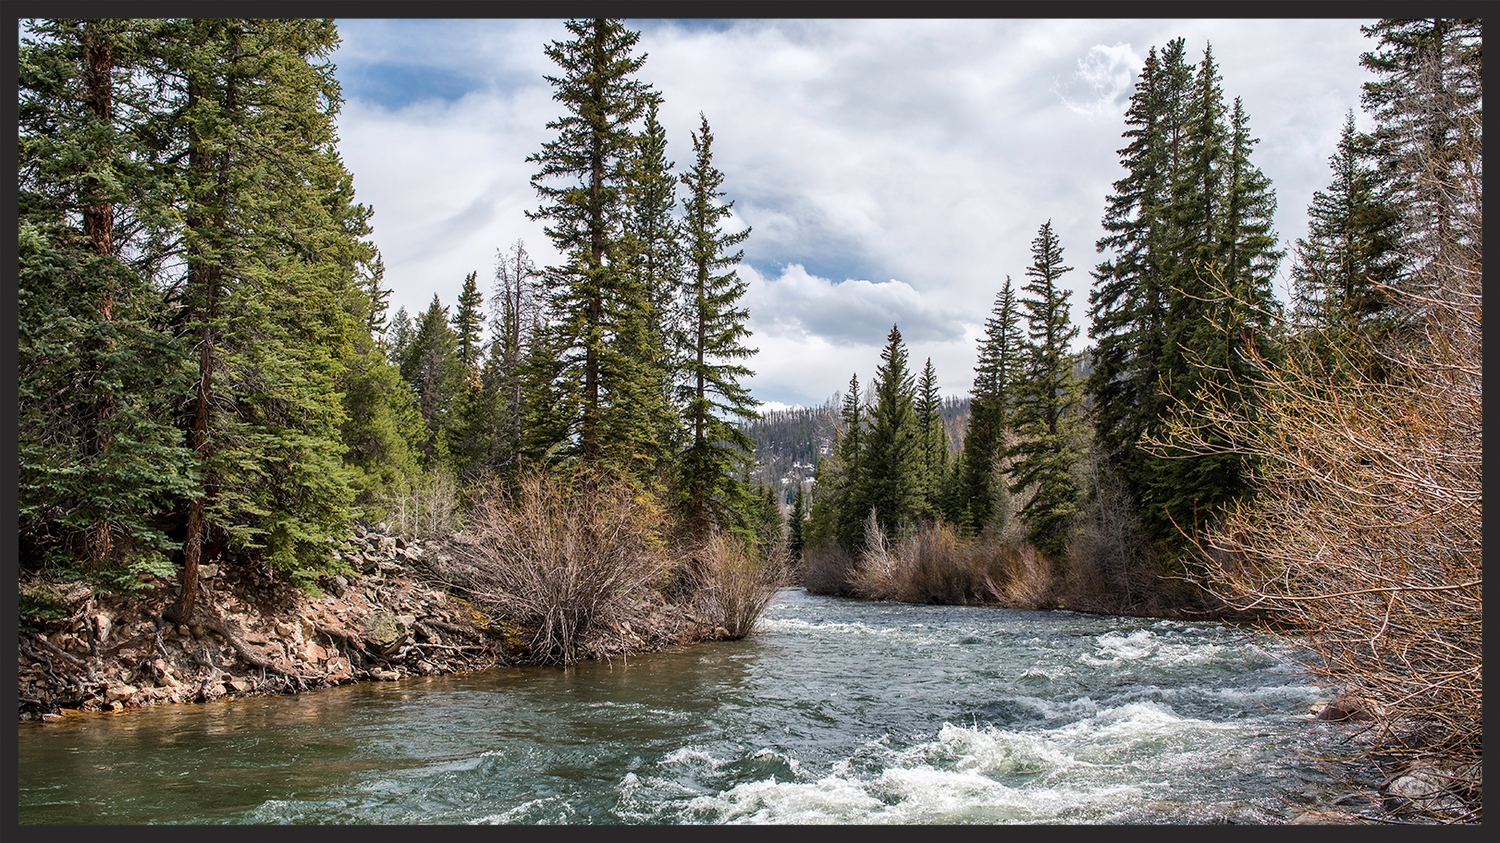 Blue River, Summit County